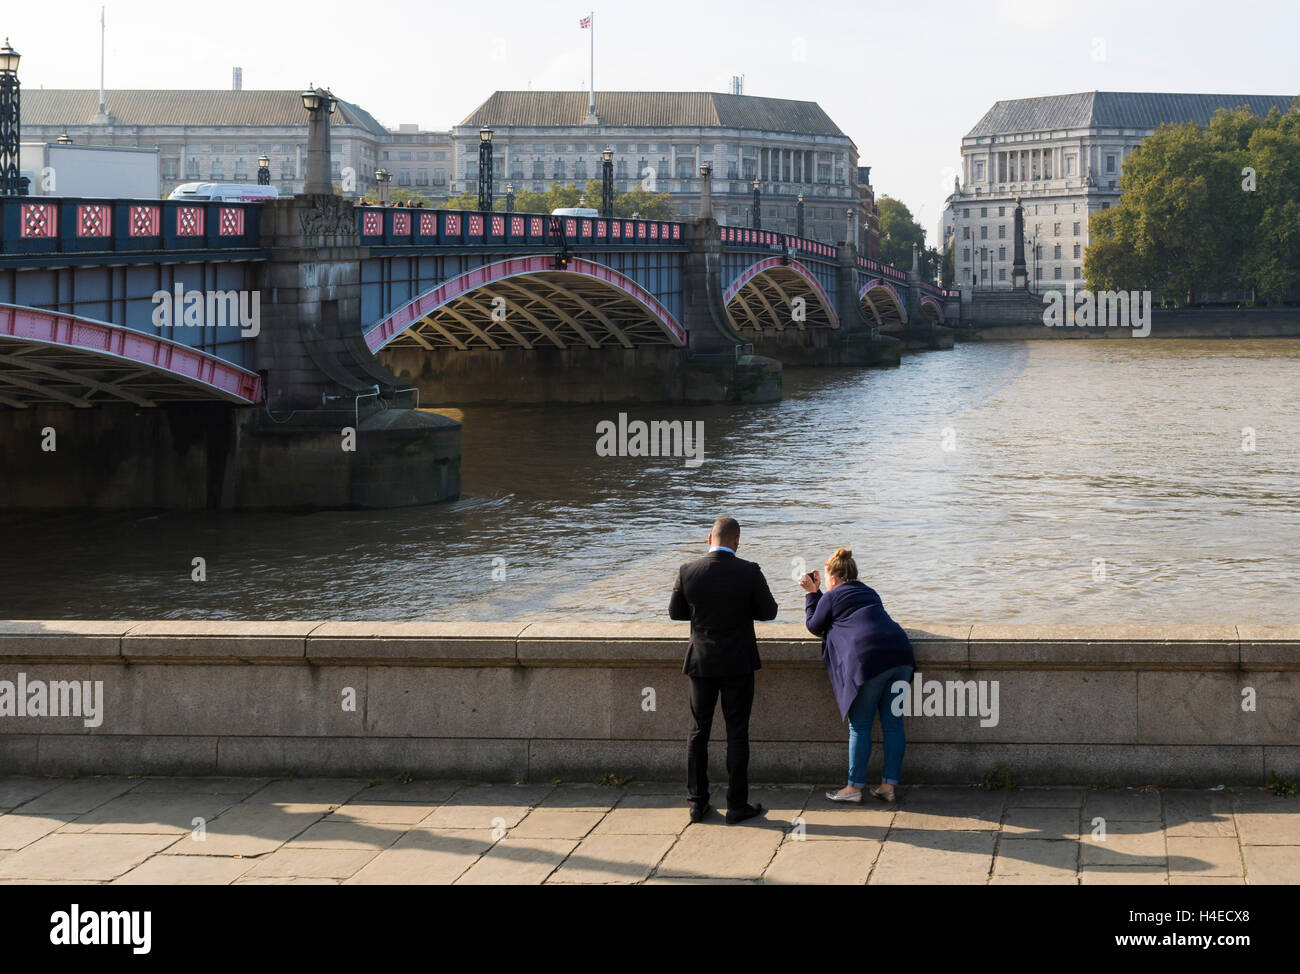 Man and woman taking photographs of the River Thames and Lambeth Bridge, London - Stock Image